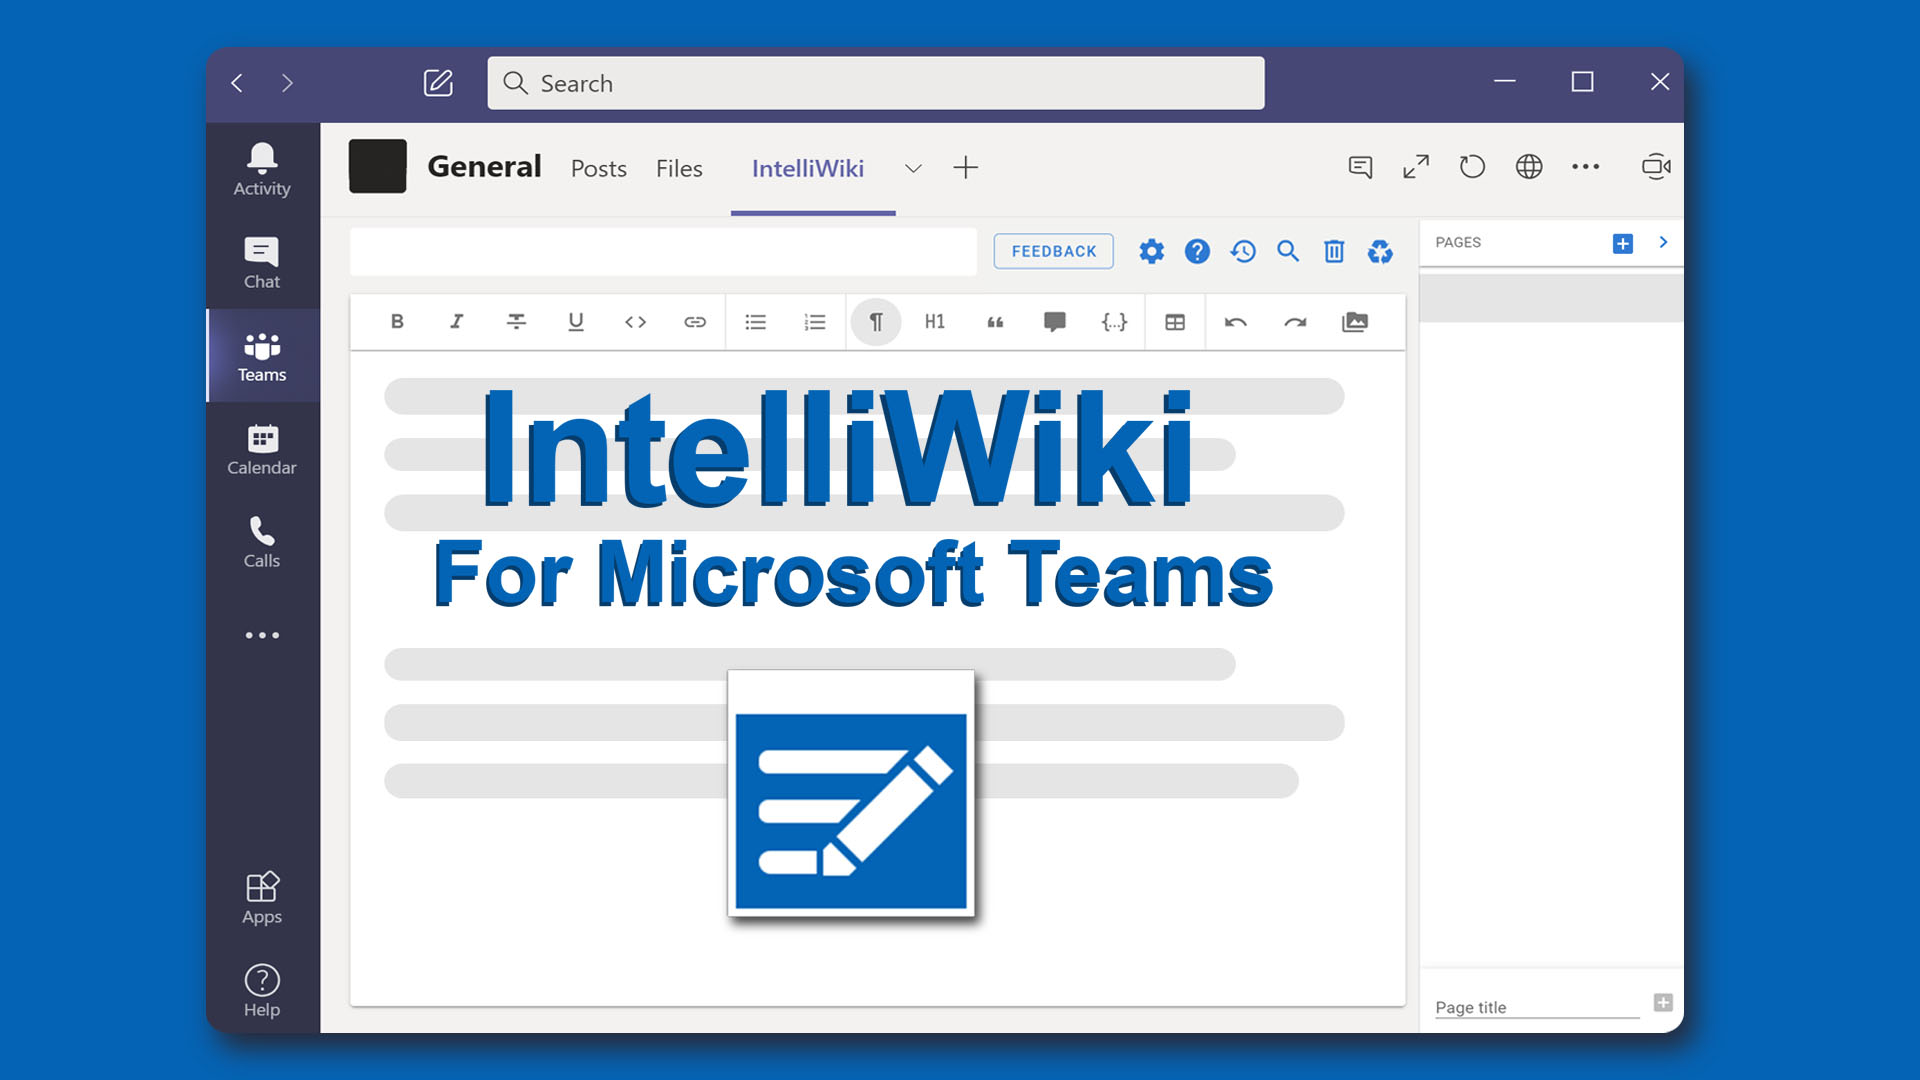 IntelliWiki for Microsoft Teams